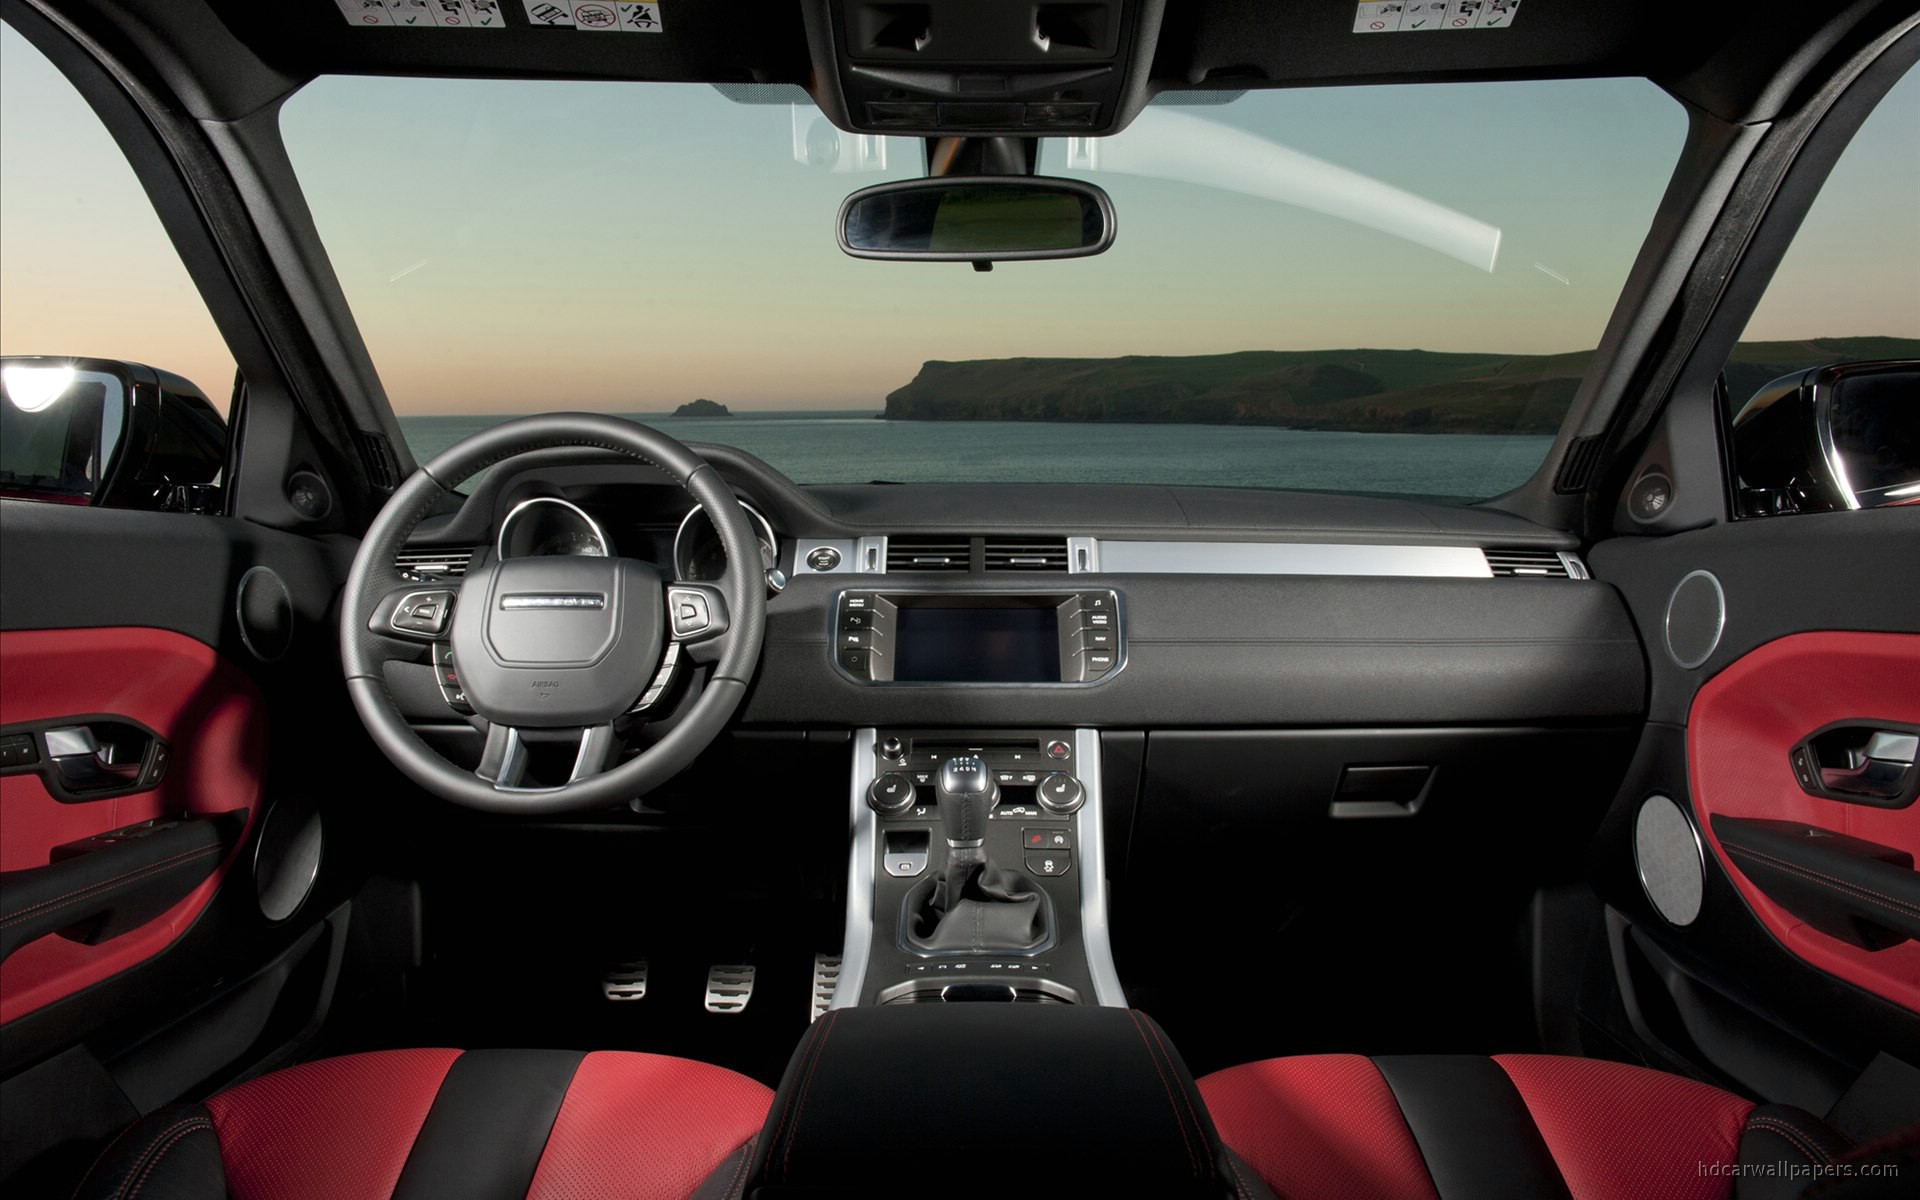 Cool Wallpaper High Resolution Range Rover - range_rover_evoque_5_door_interior-wide  Perfect Image Reference_238128.jpg